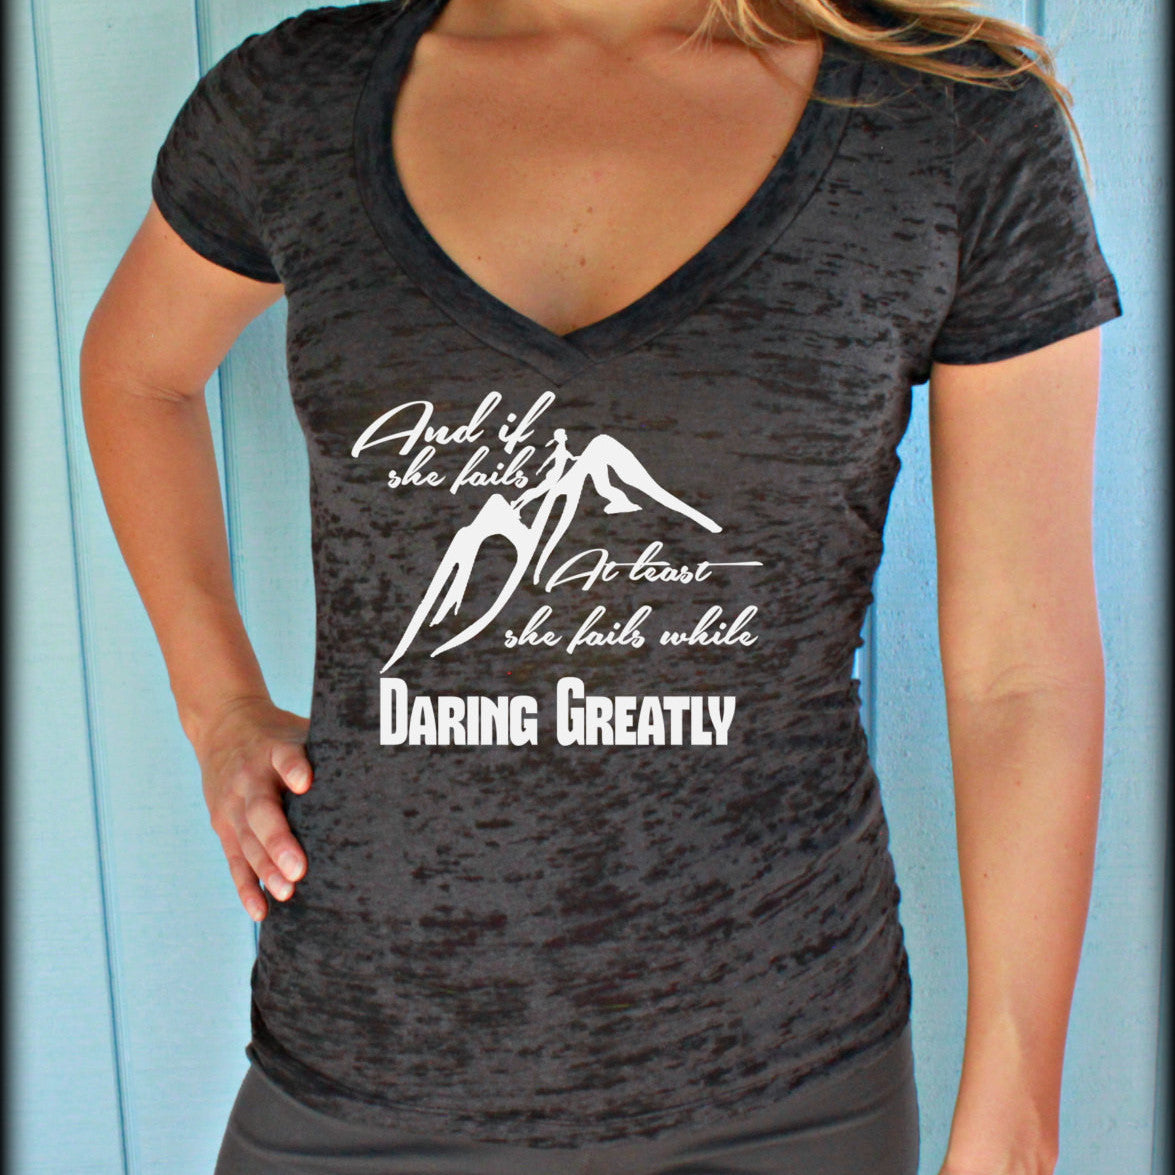 Womens Workout T Shirt. And if She Fails She Fails While Daring Greatly. Motivational Exercise Apparel. V-Neck T-Shirt.